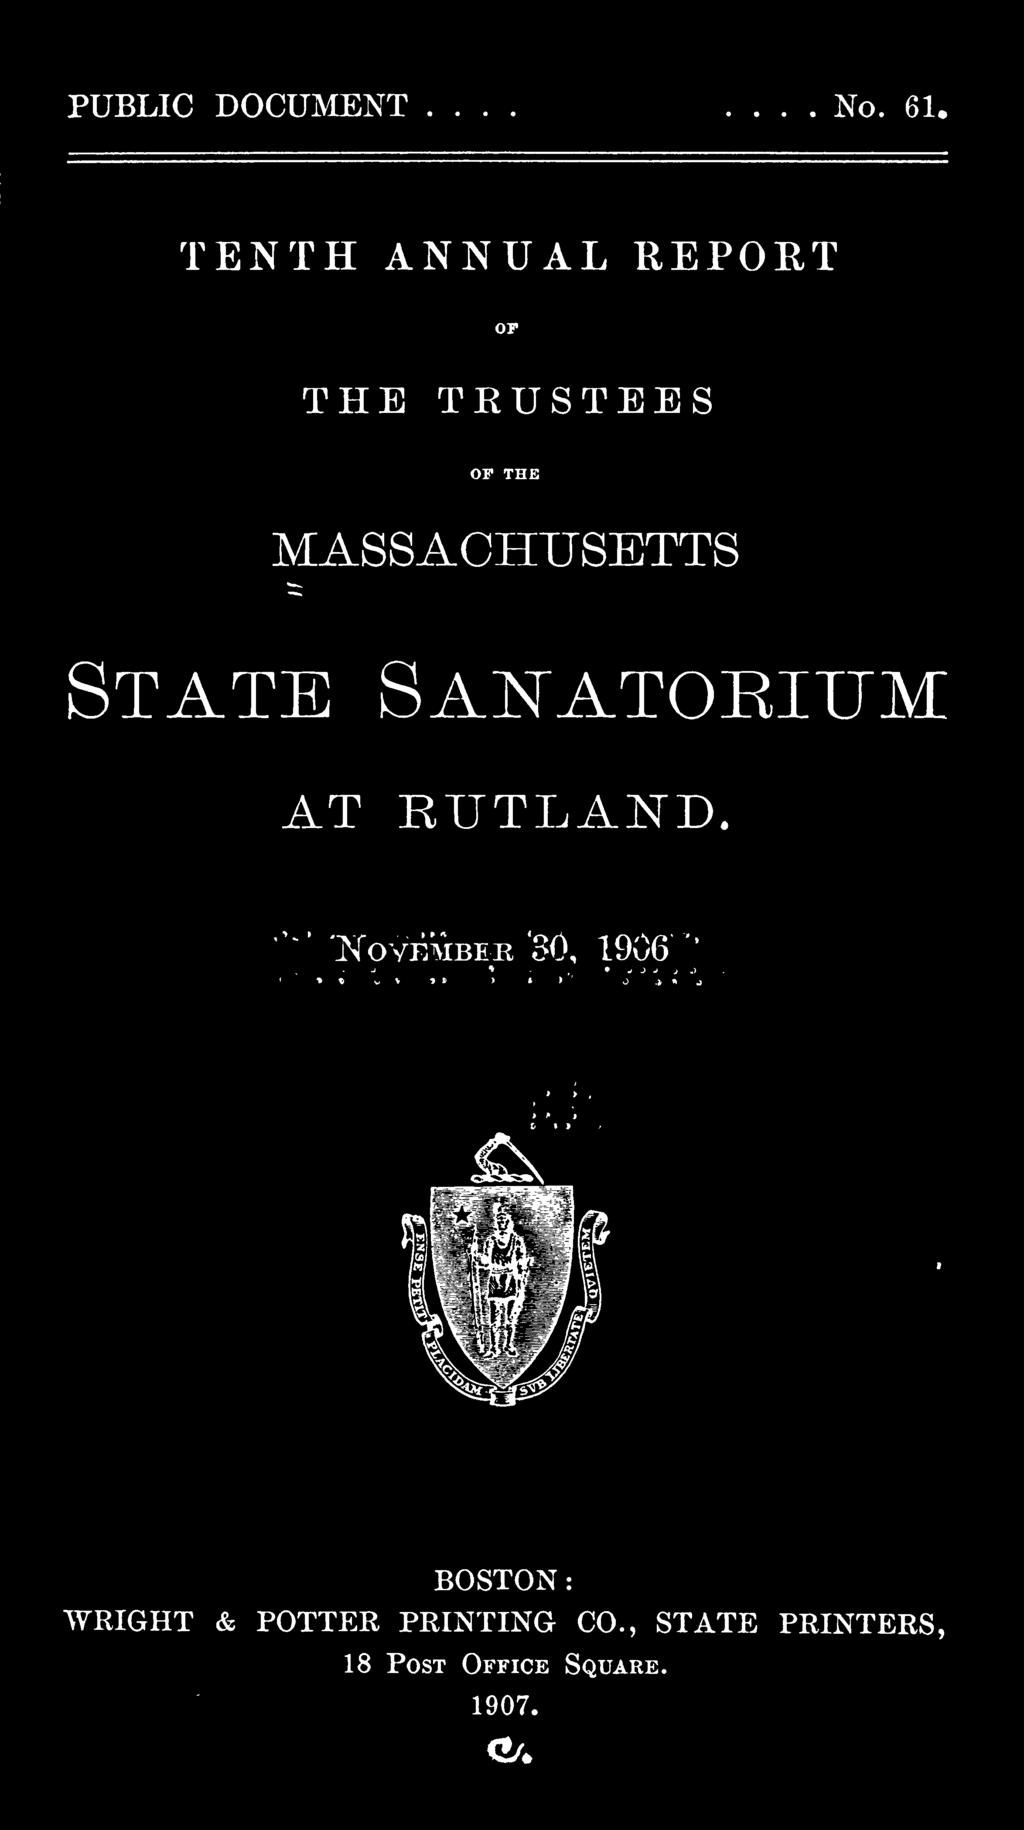 MASSACHUSETTS State Sanatorium AT RUTLAND.